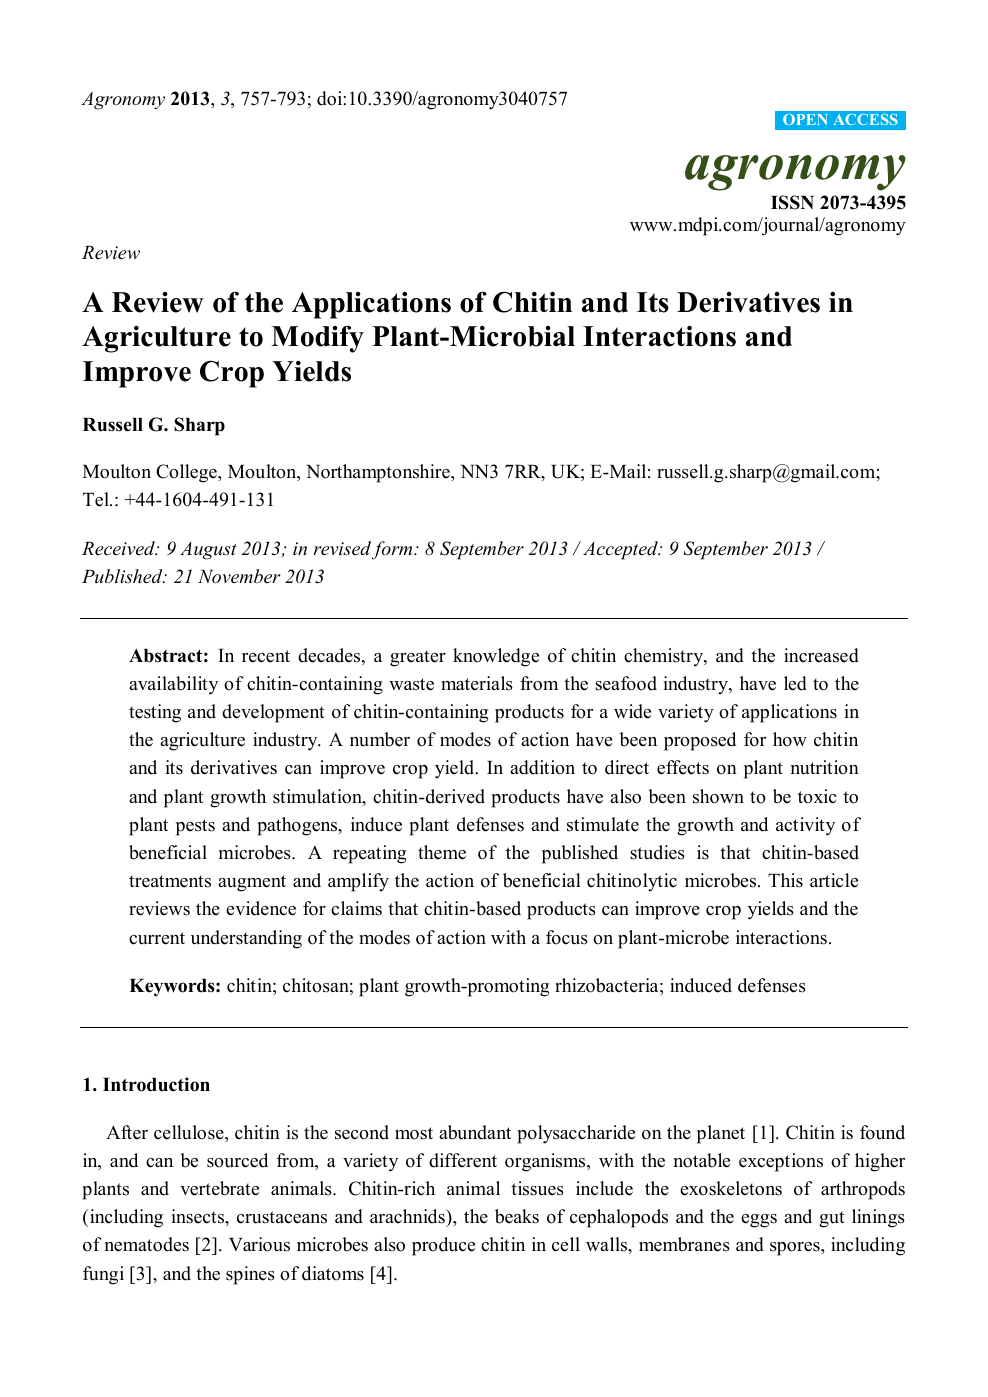 A Review of the Applications of Chitin and Its Derivatives in